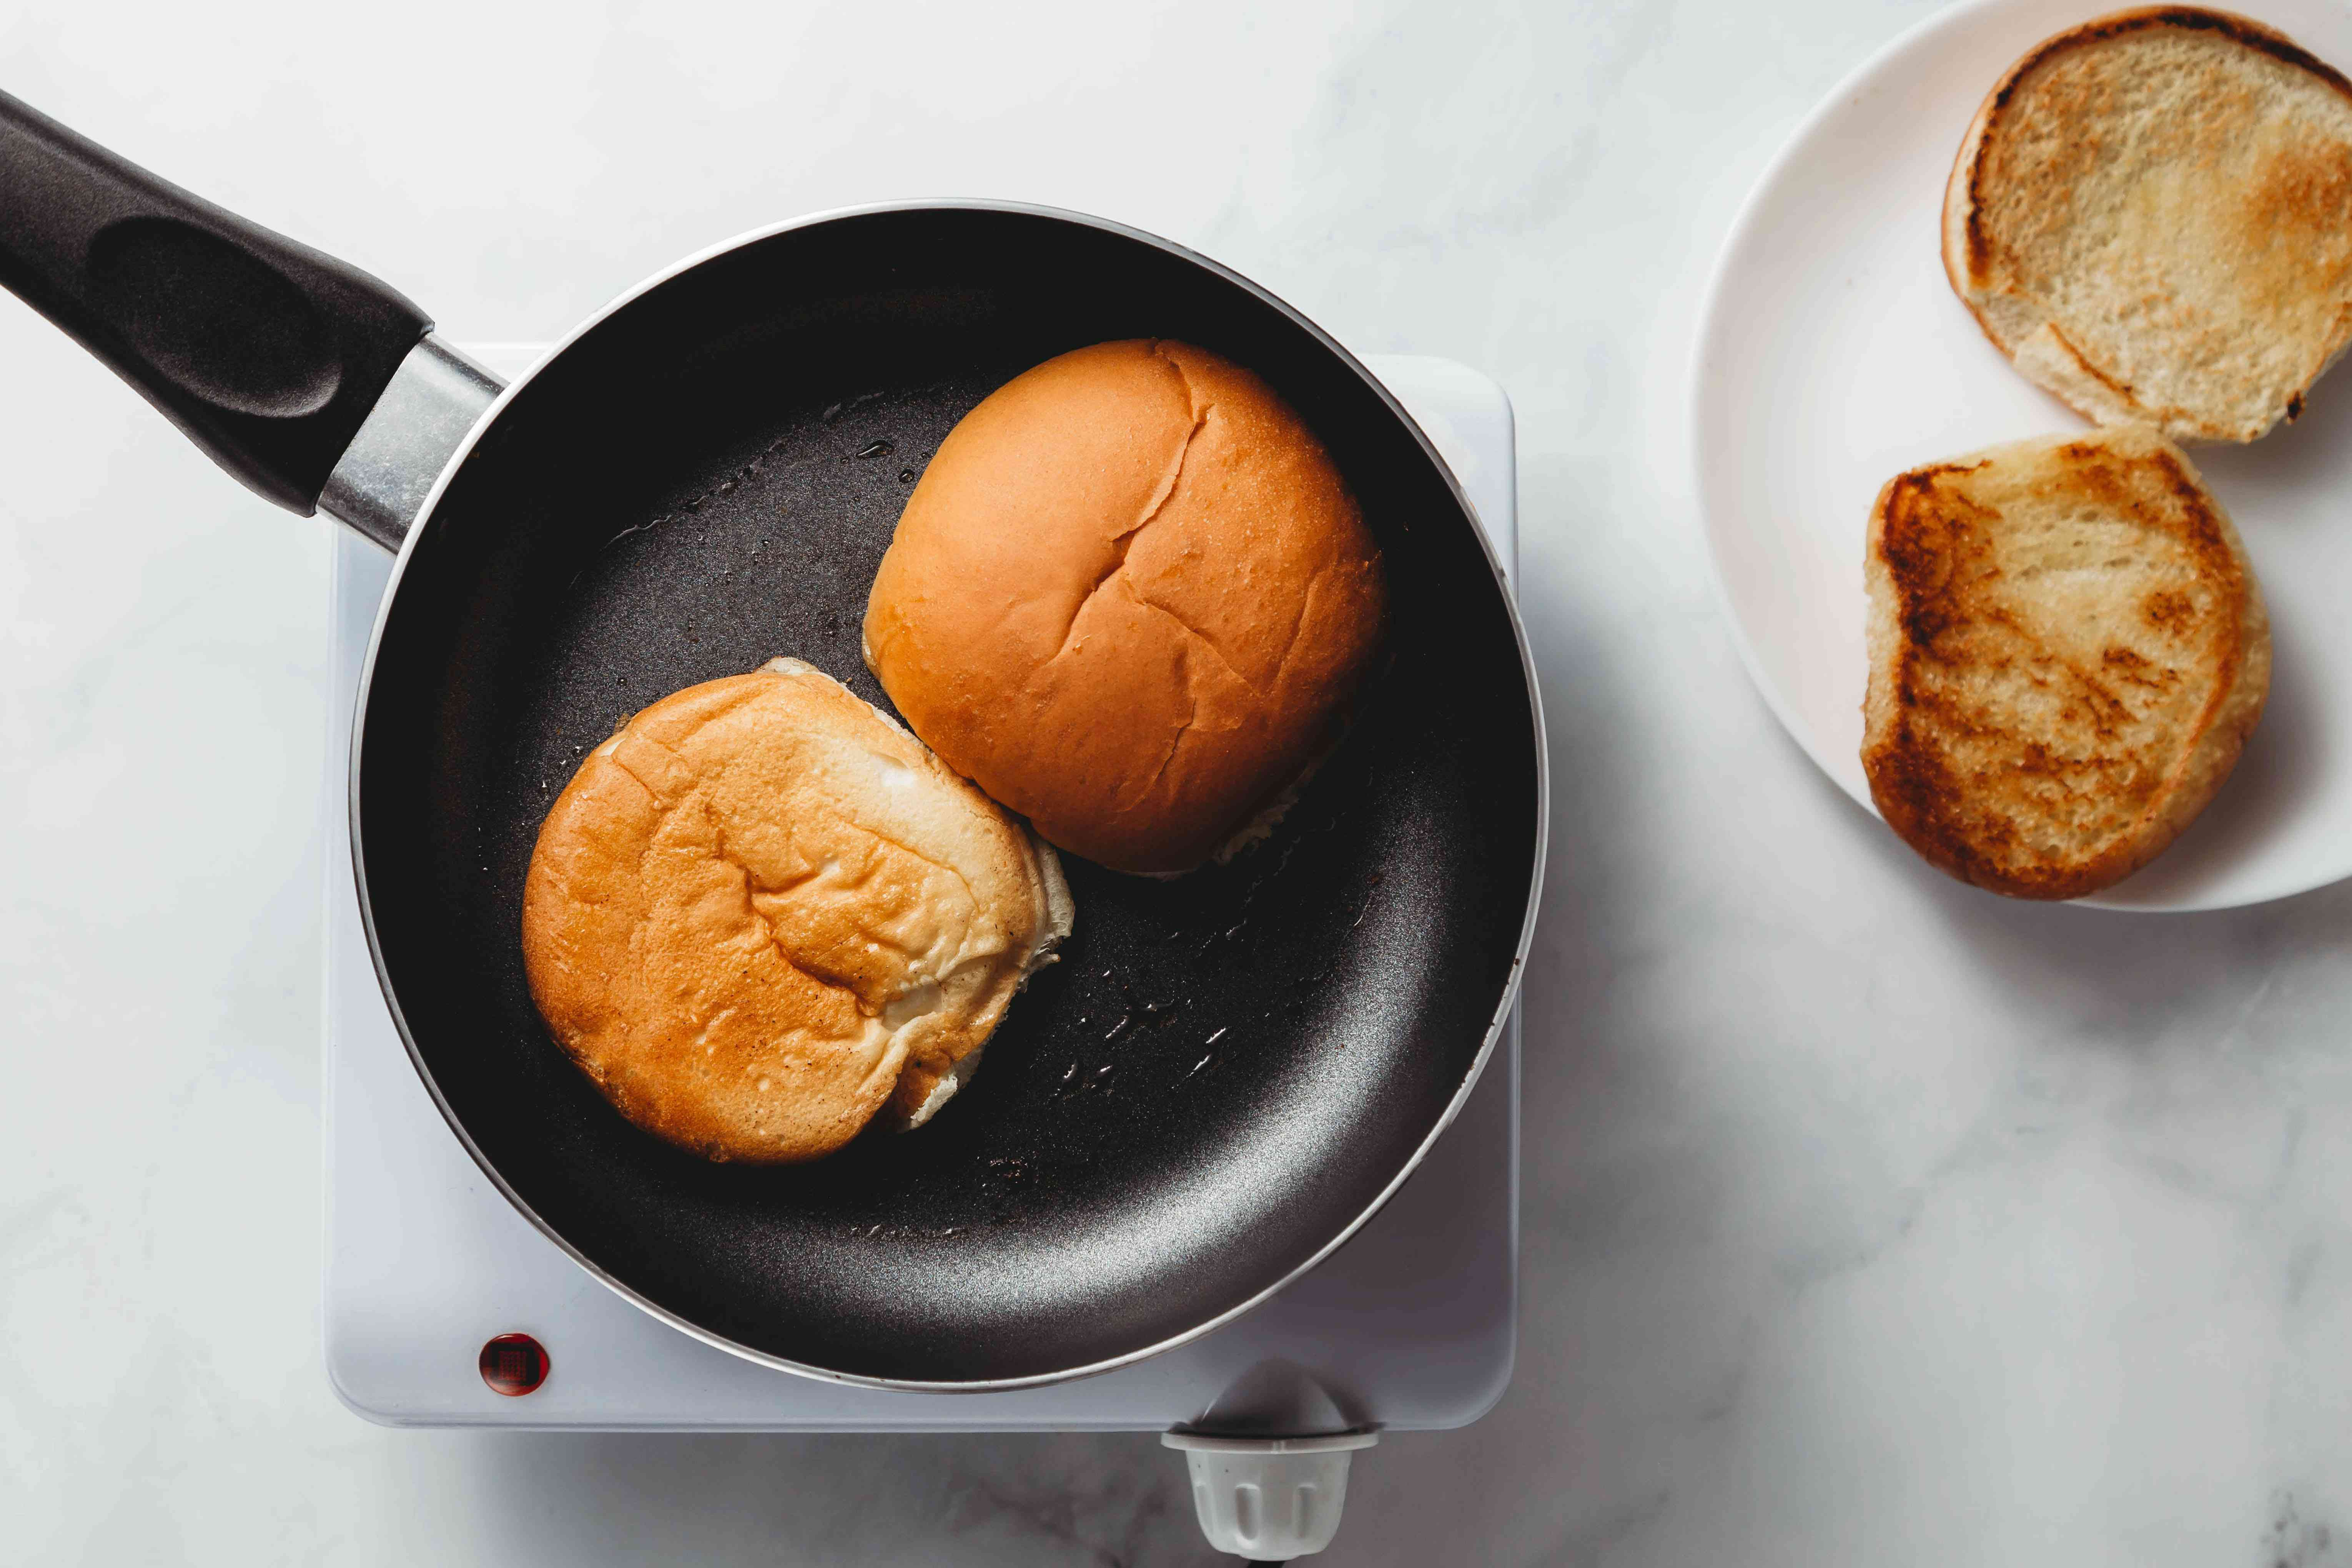 toast bread in a skillet